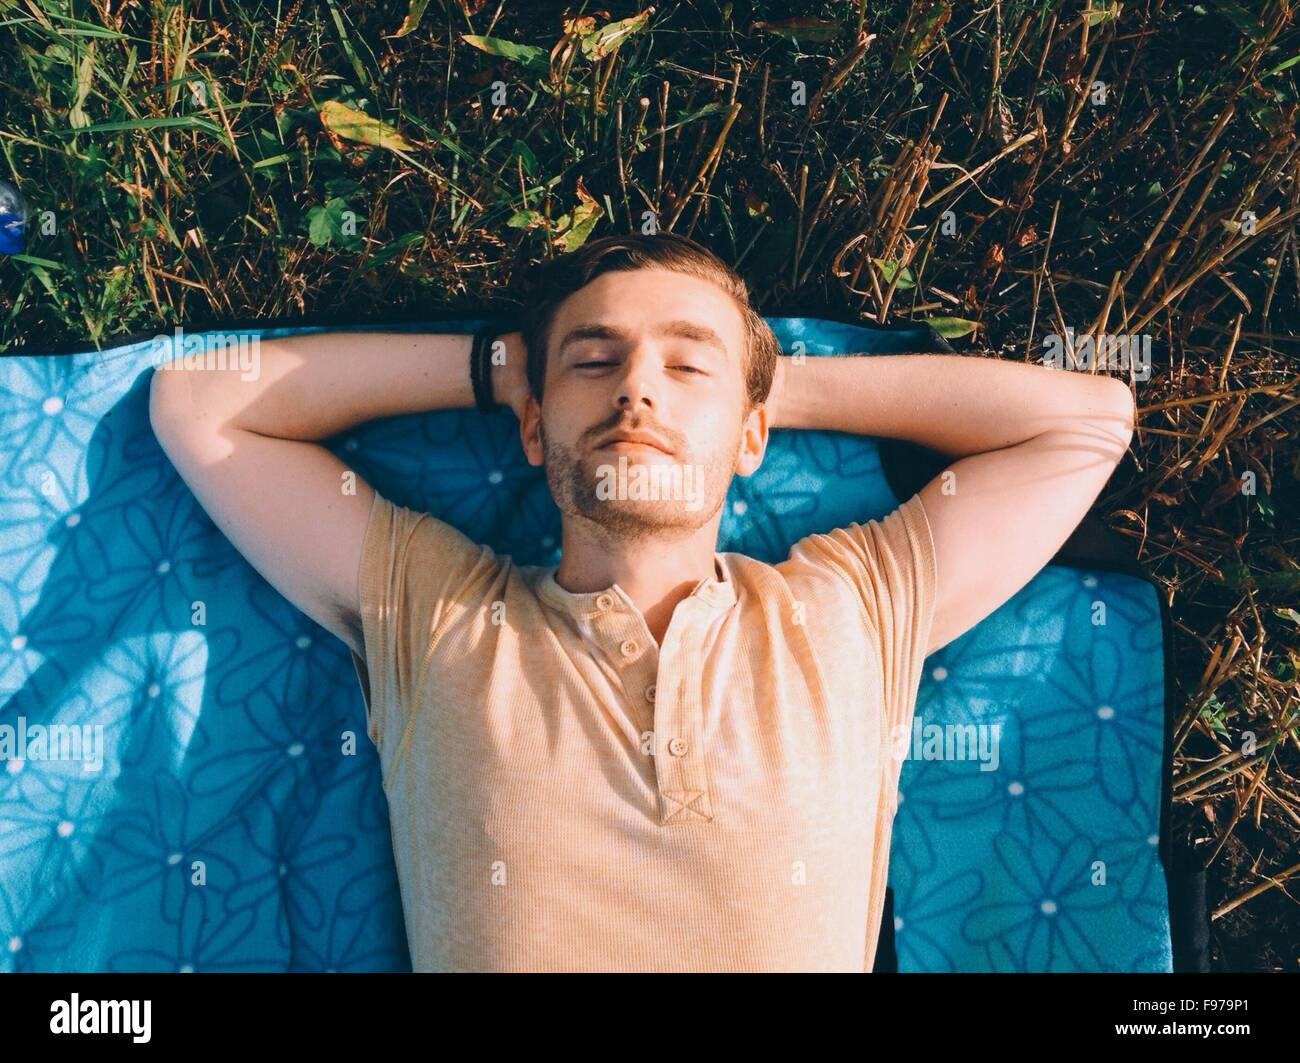 High Angle View Of A Man Lying Outdoors - Stock Image